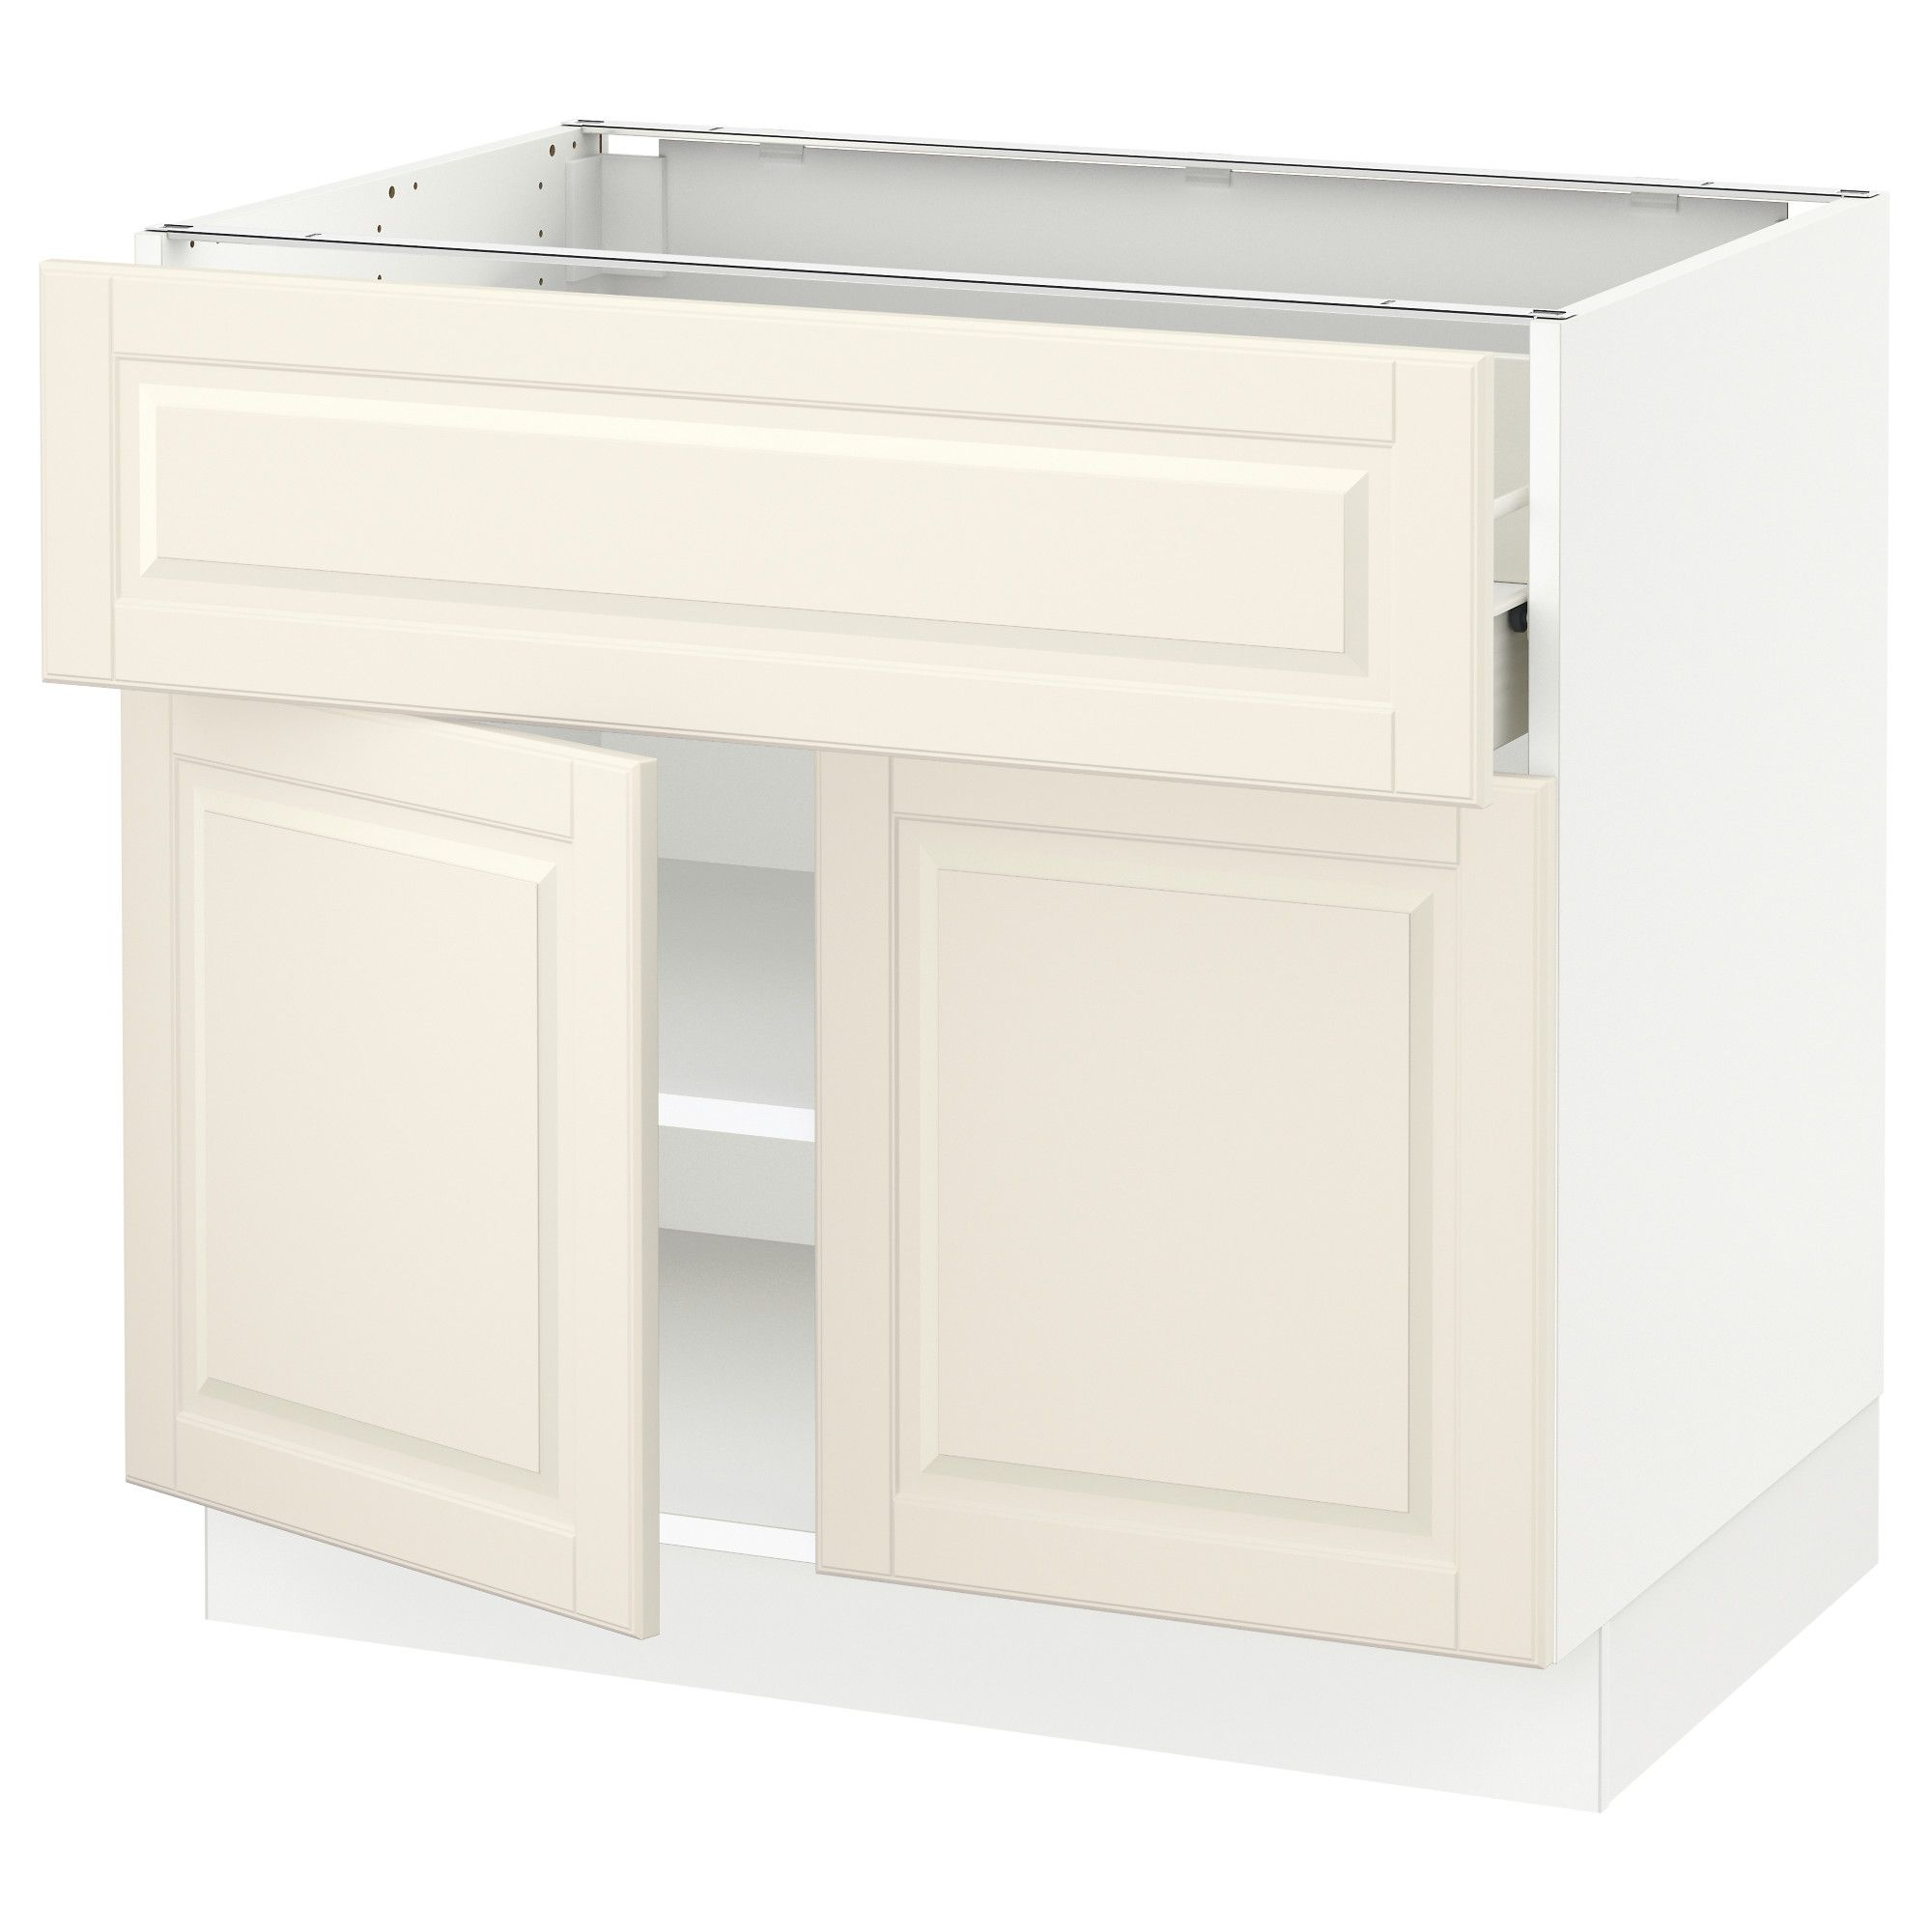 drawer dorable how kitchen depot cabinets outdoor closet units types home waterproof with movable your pantry base superb drawers to sewing ideas storage oven picture cabinet trendy hardware model organize and food double